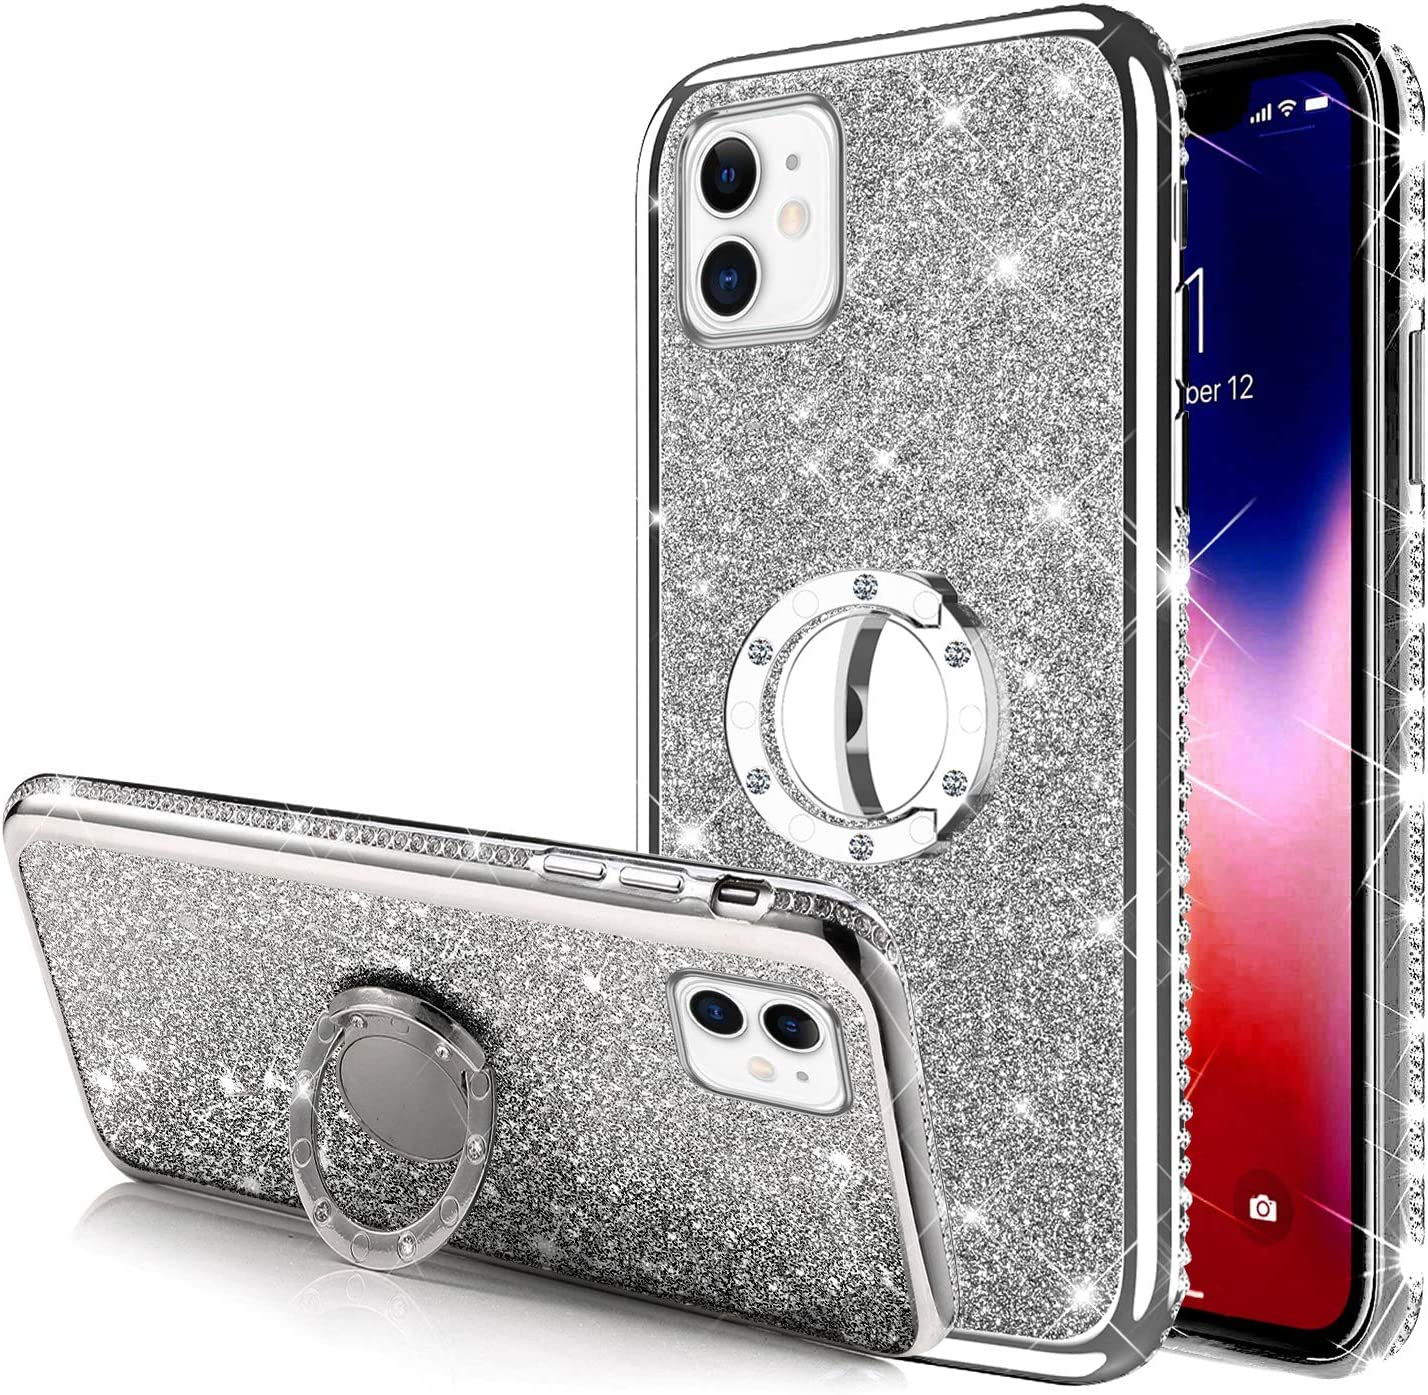 ikasus Case for iPhone 11 Glitter Case,Sparkly Glitter Bling Diamond Rhinestone Bumper with Ring Kickstand Flexible Soft Rubber Gel TPU Protective Case Cover for iPhone 11 Case for Girl Women,Silver